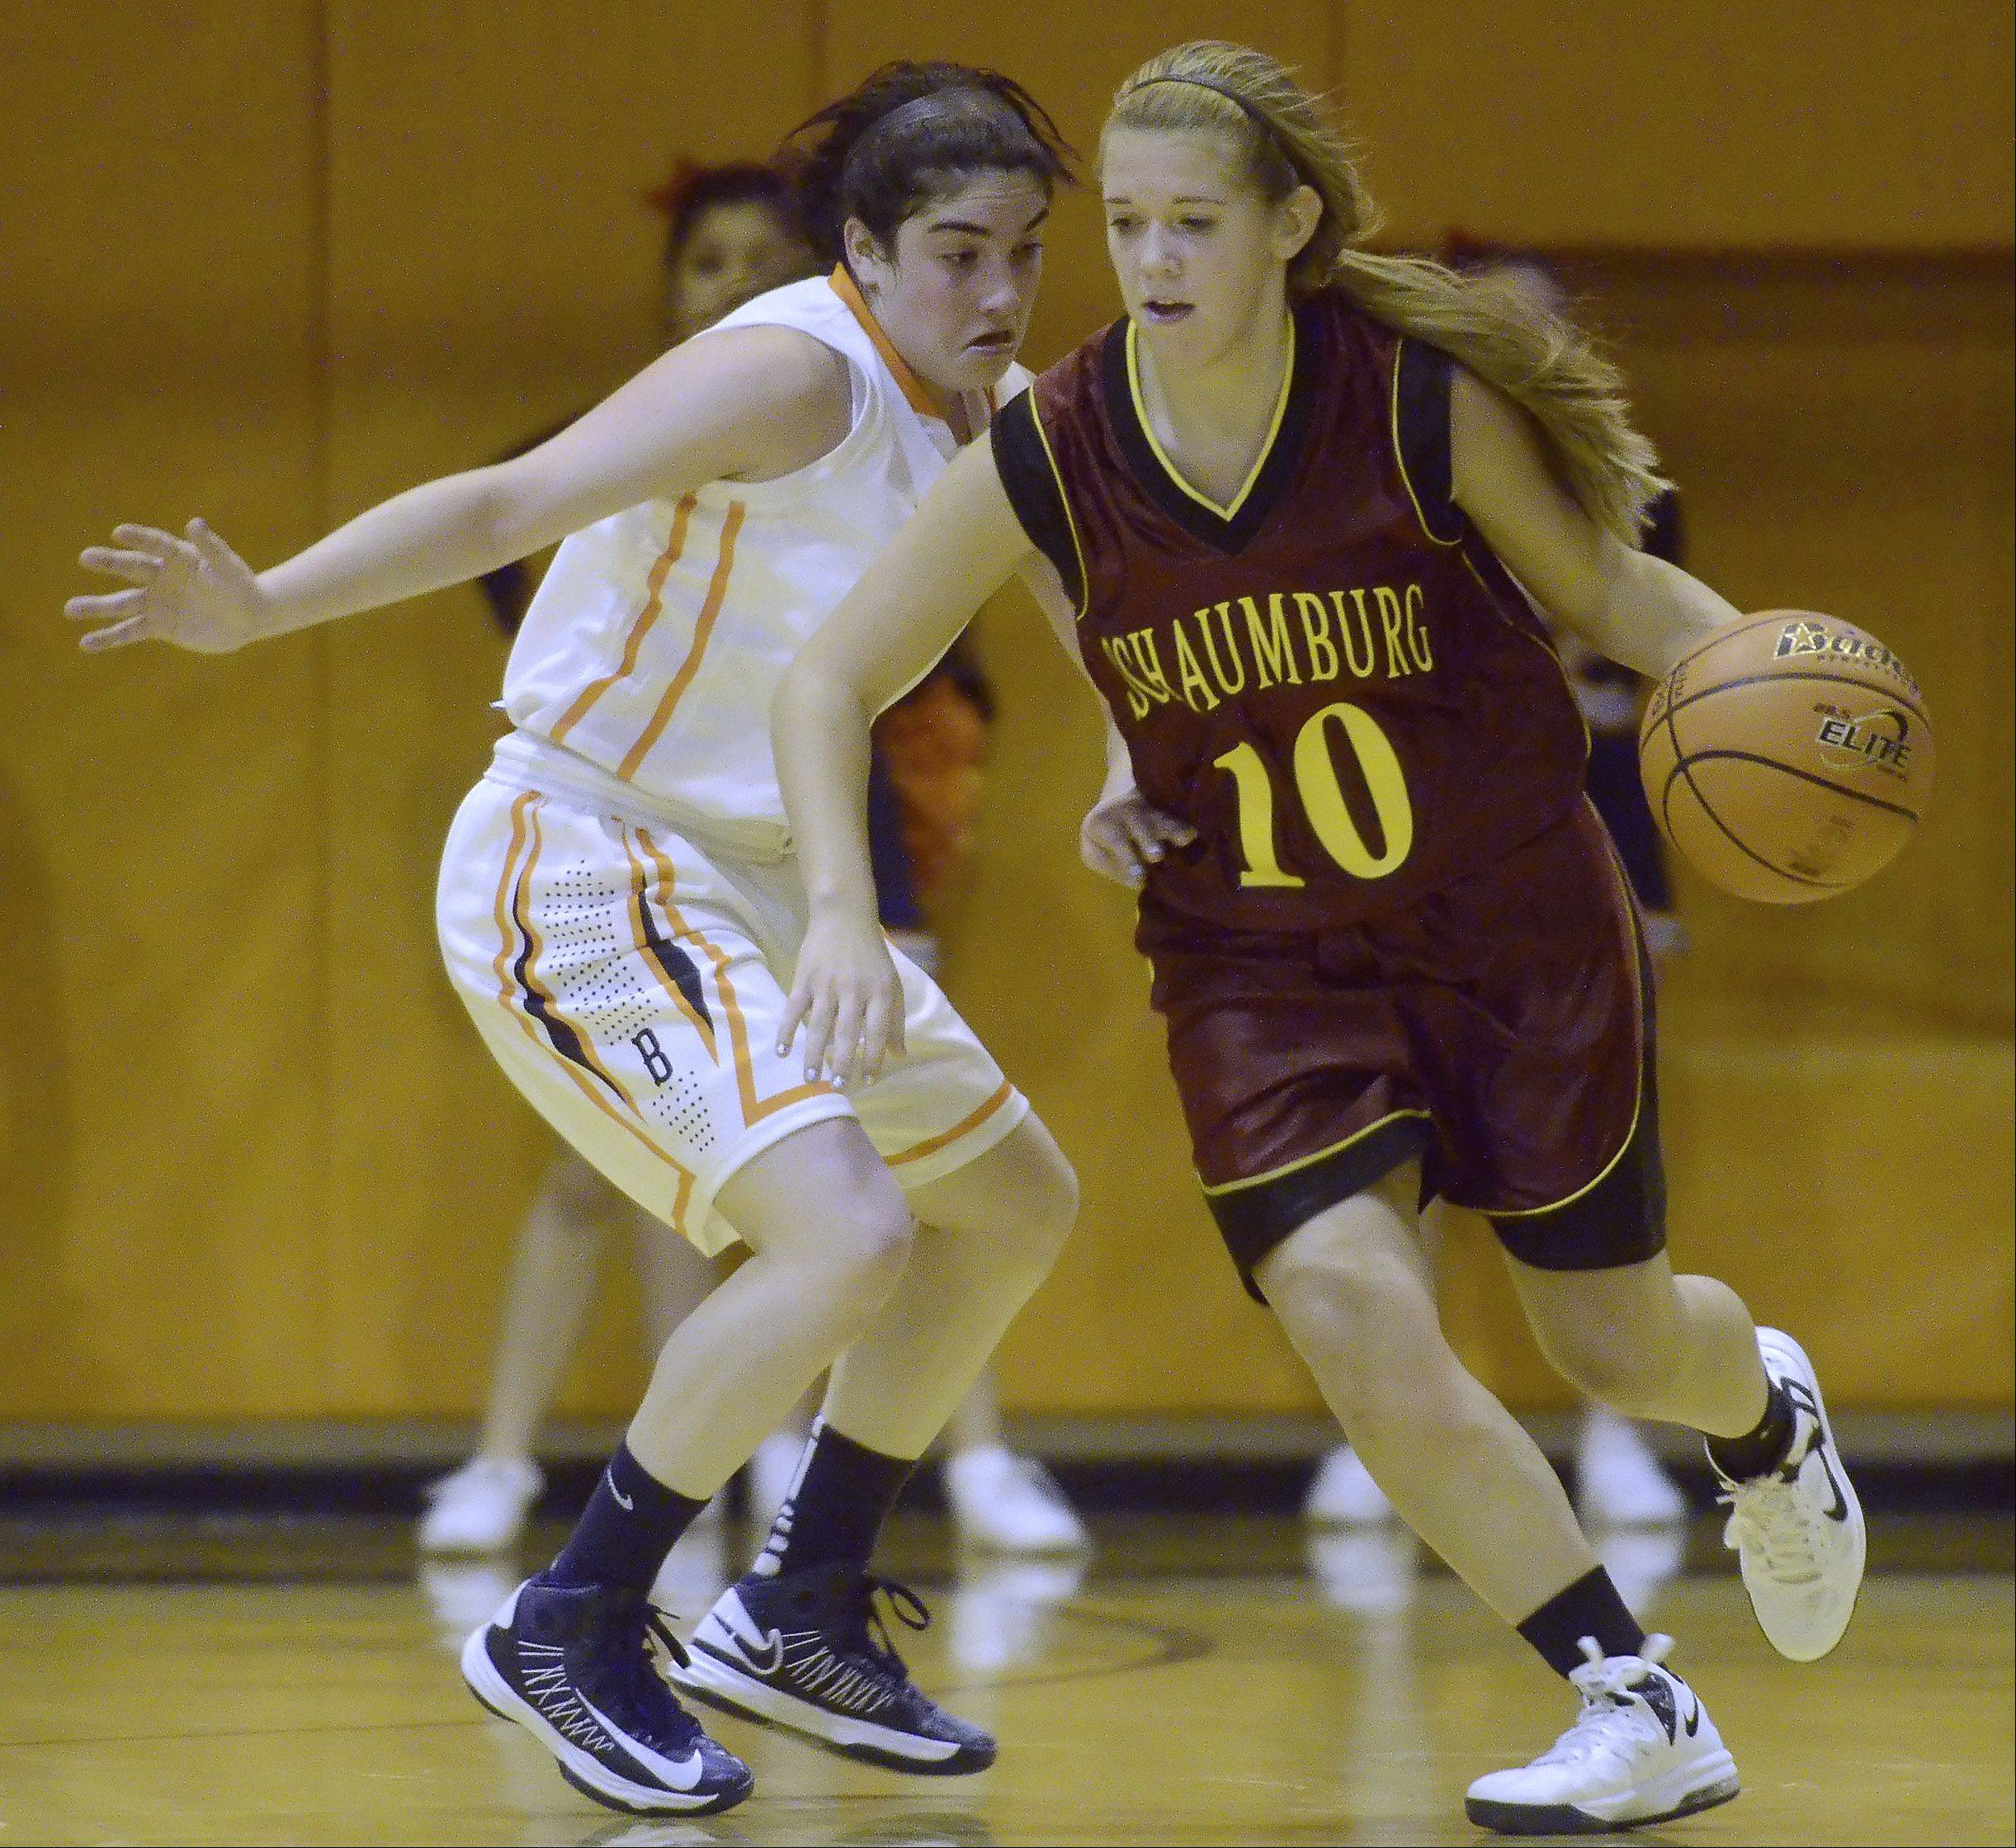 Schaumburg's Riley Williams drives around Buffalo Grove's Julie Jambrone during Tuesday's game.